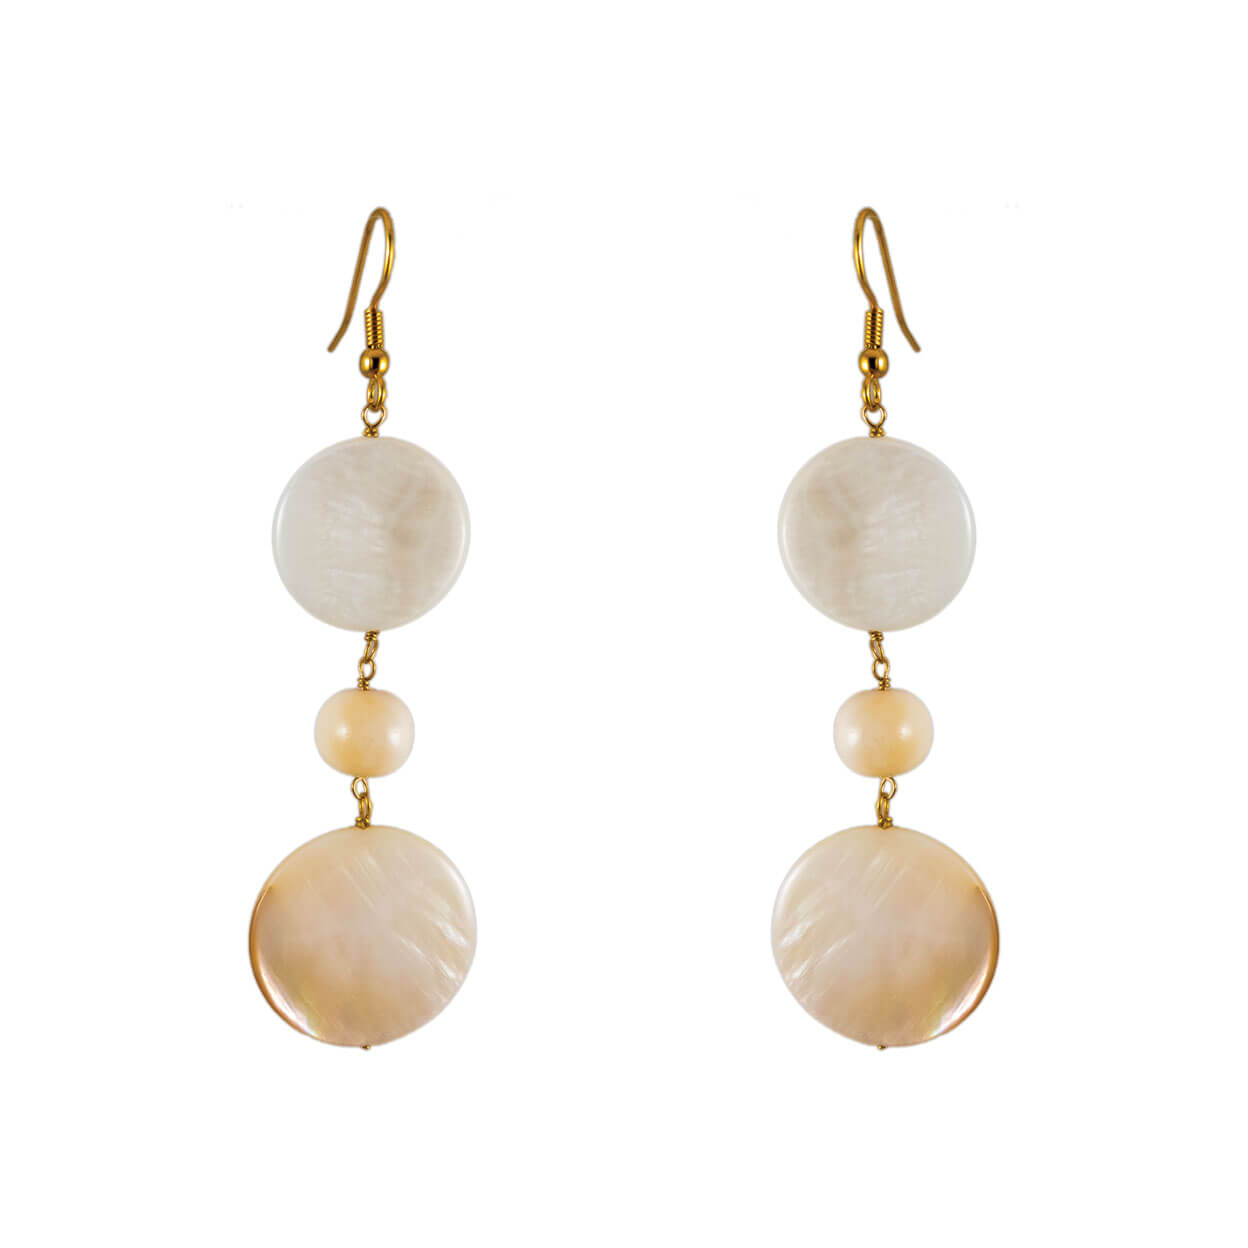 tropical earrings with ivory mother of pearl and bone on gold hooks